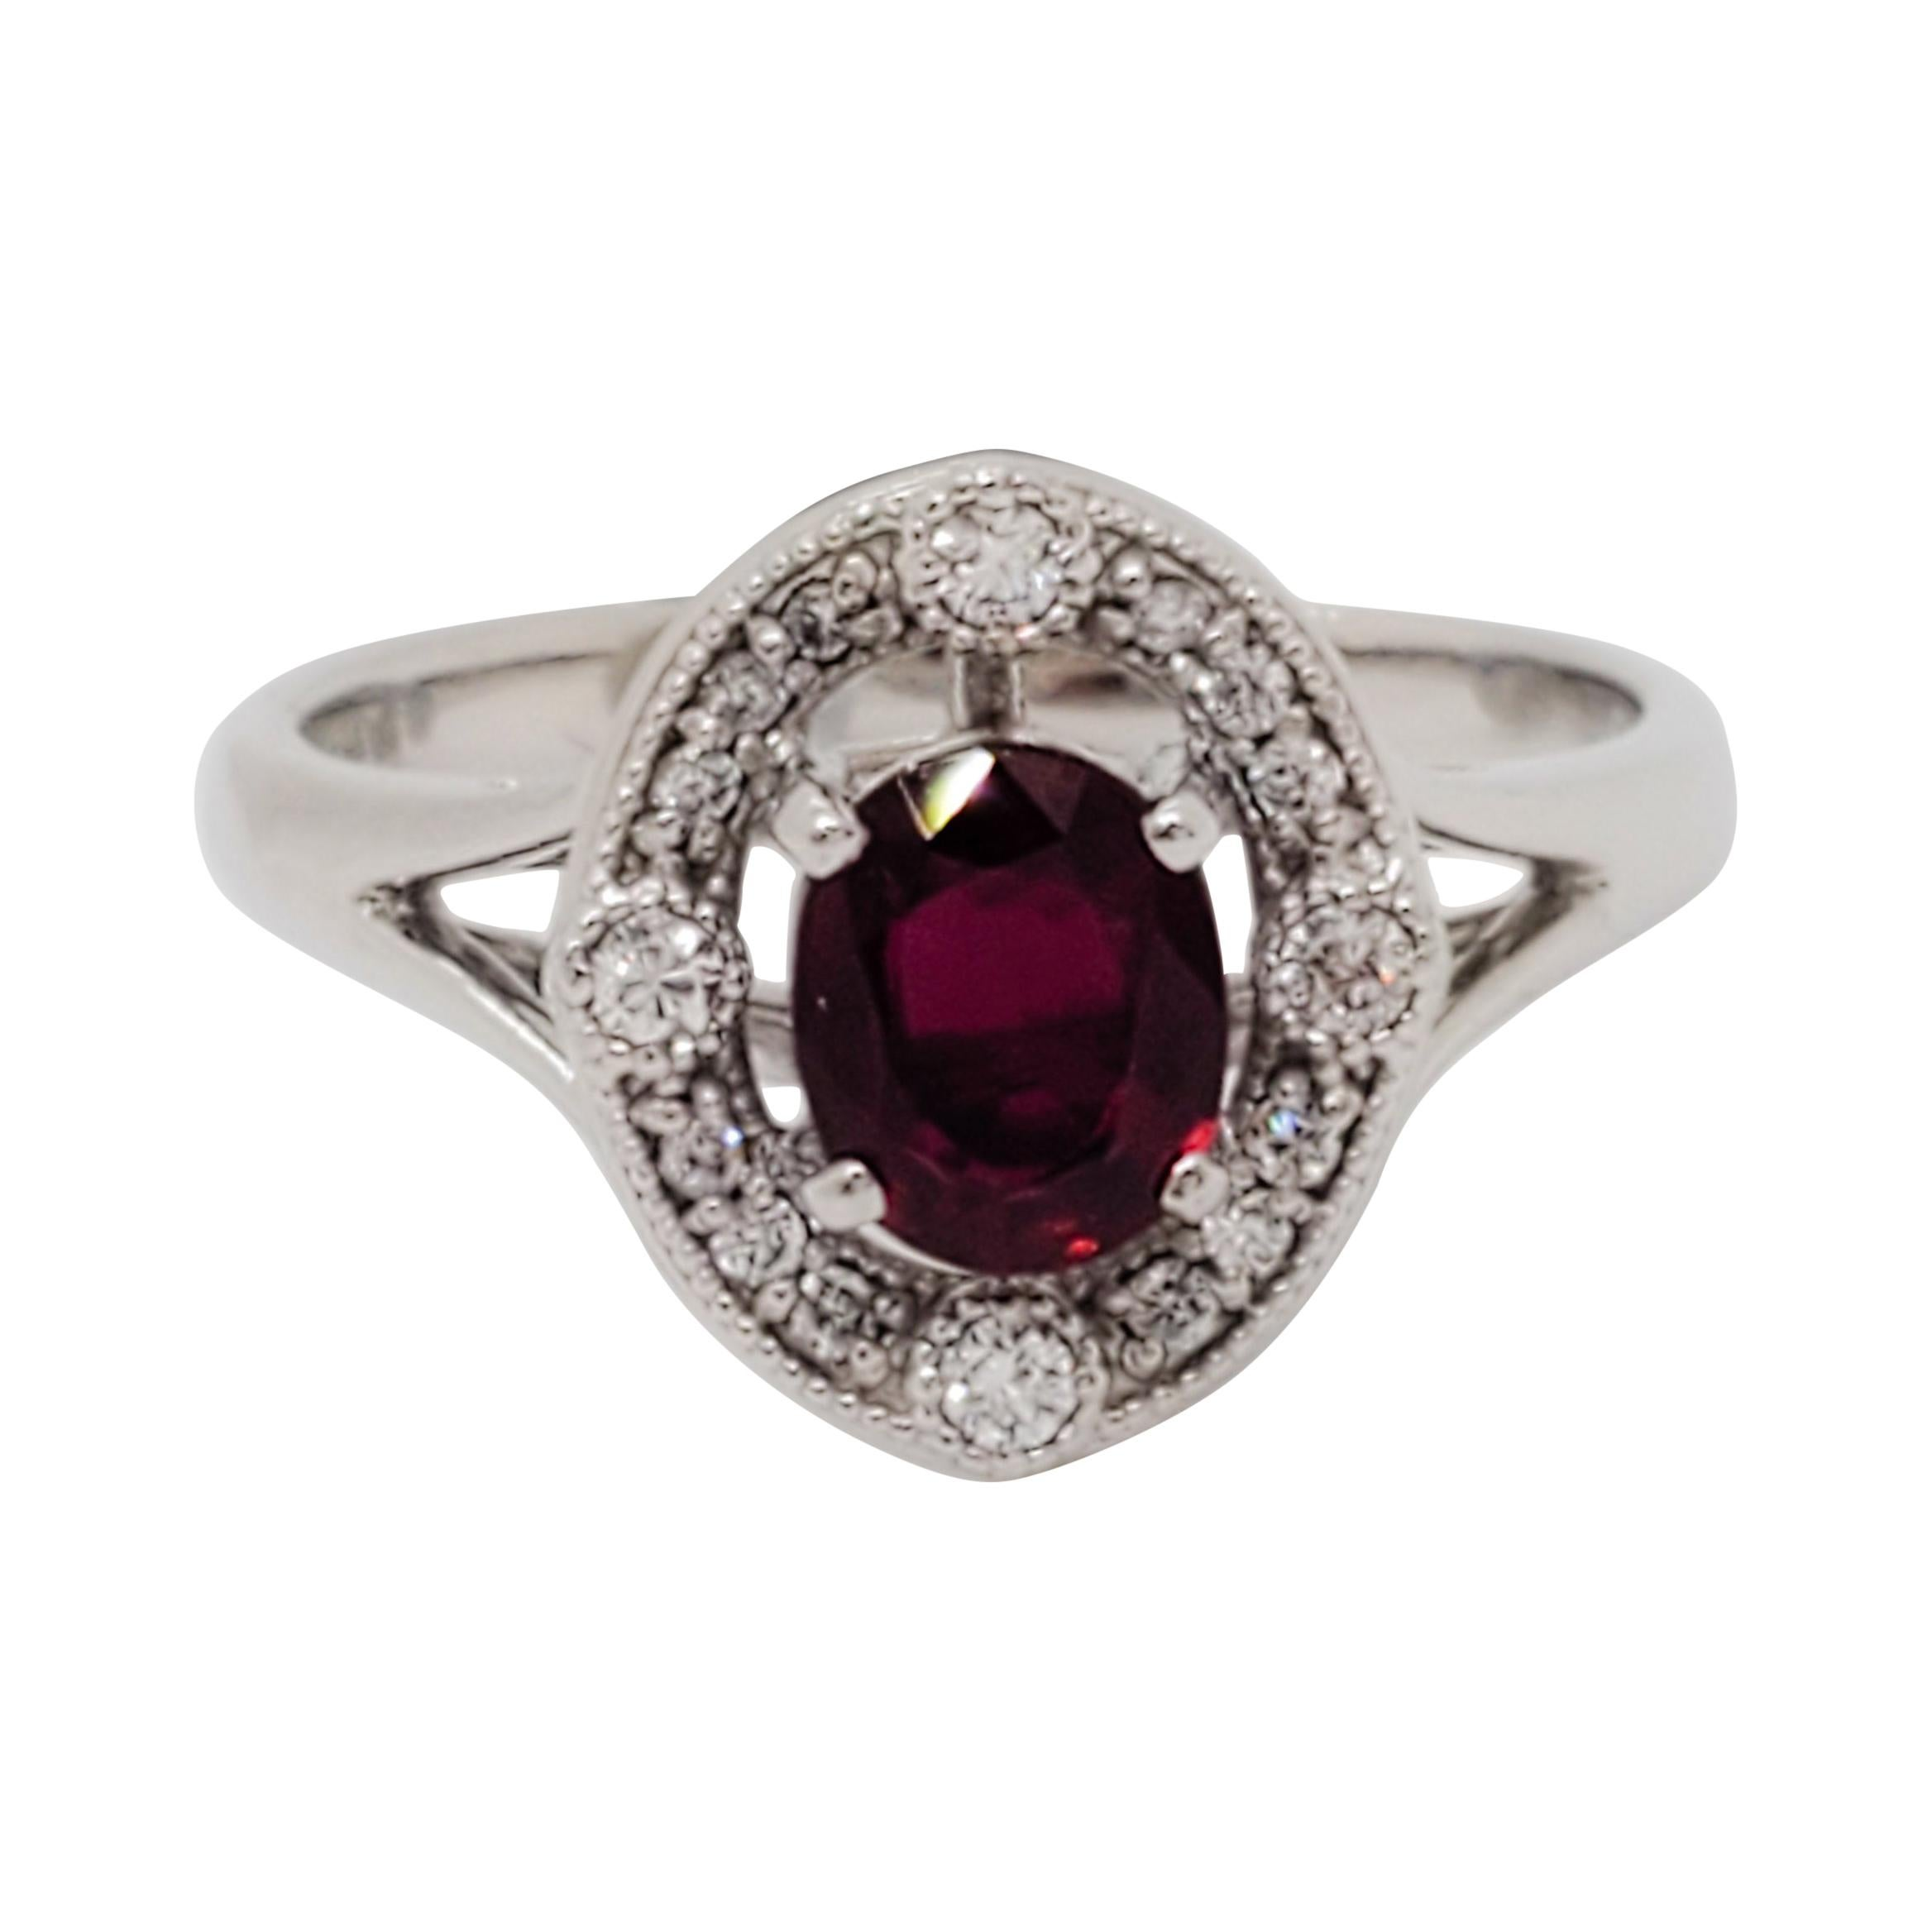 AIGs Certified Pigeon's Blood Ruby Oval and White Diamond Cocktail Ring